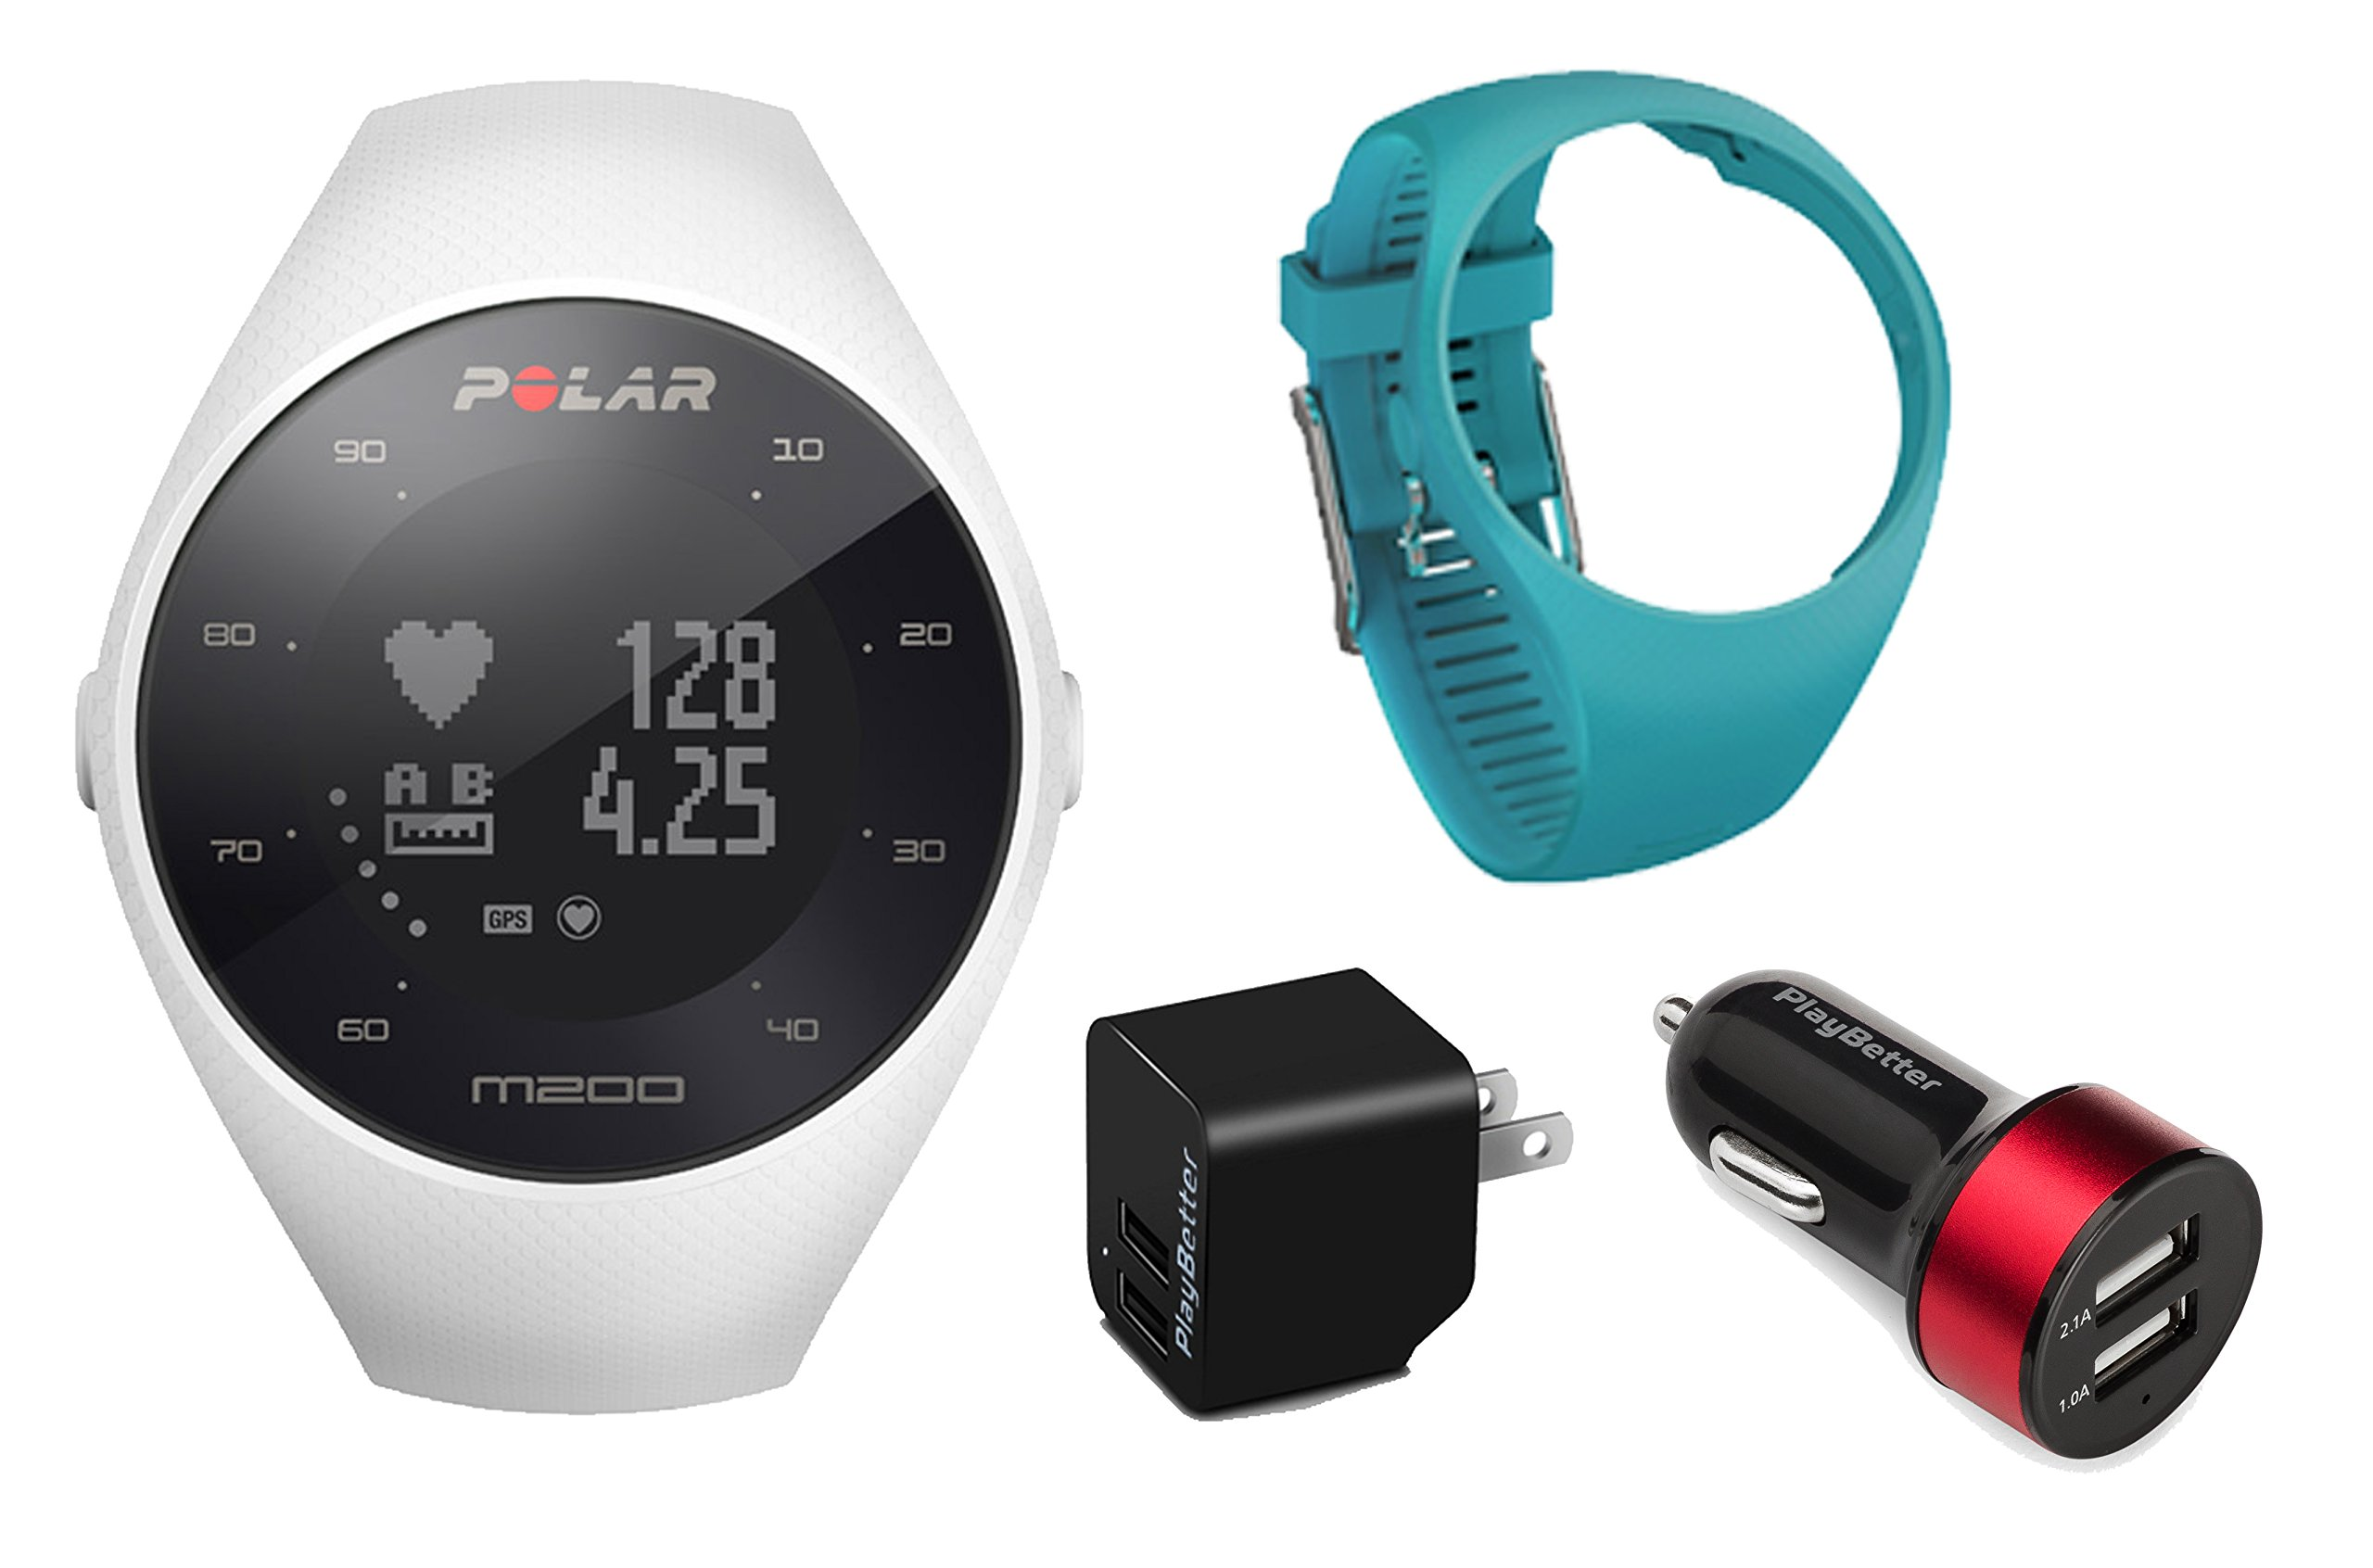 Polar M200 (White) Running GPS Watch Power Bundle | Includes Extra Silicone Wrist Band (Blue) & PlayBetter USB Car/Wall Charging Adapters | Running Watch with Wrist HR